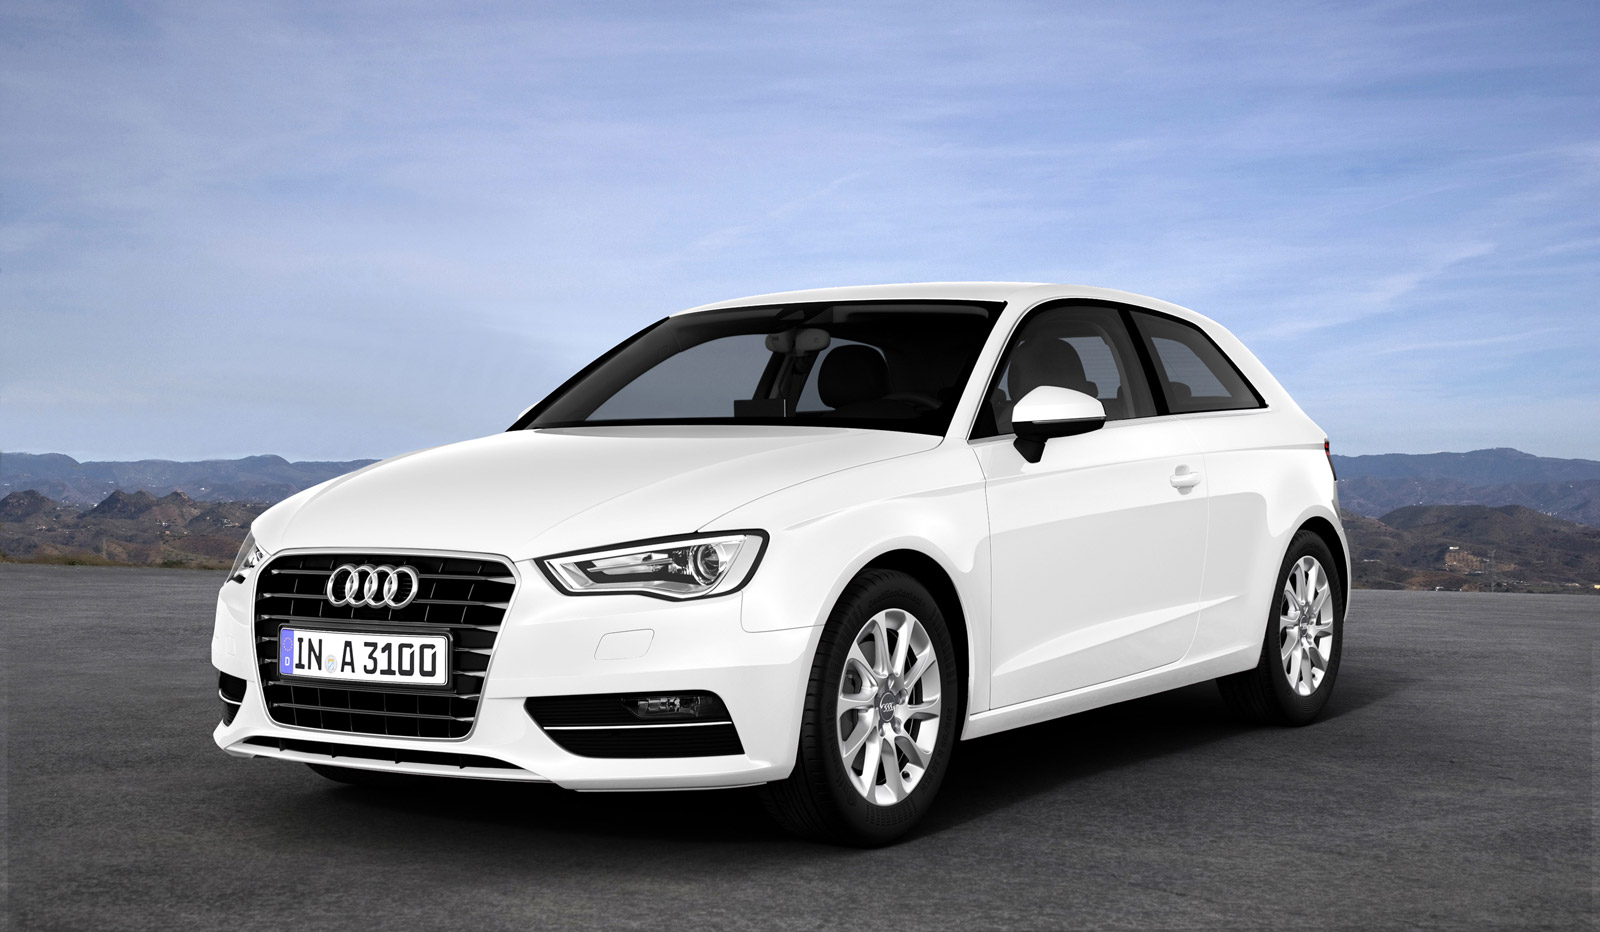 Audi A3 Tdi Ultra Is Audis Most Fuel Efficient Car Everbut Not 2010 A4 Battery Location For Us